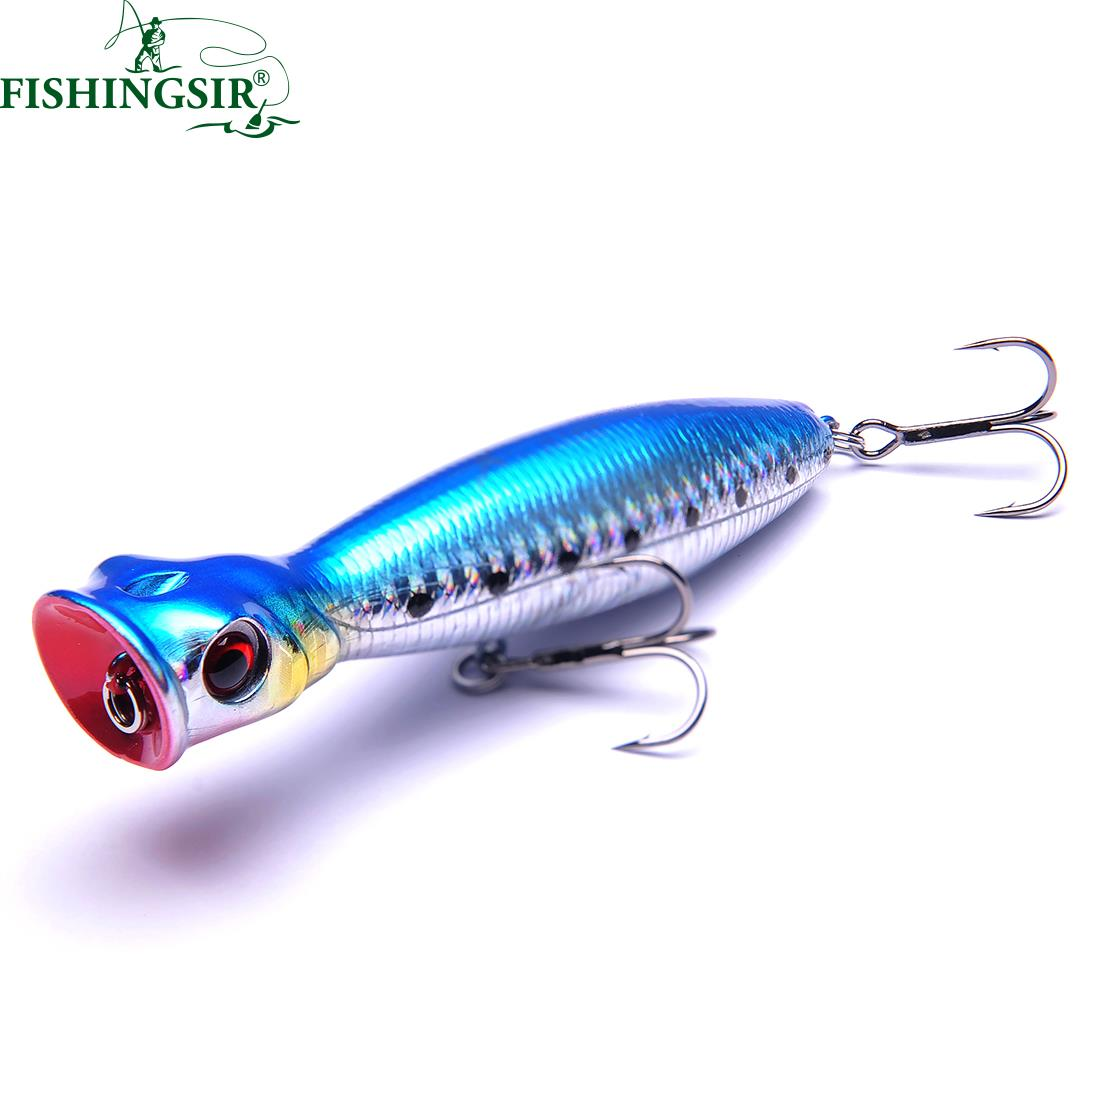 Isca Artificial Big Mouth Popper Fishing Lures 10cm/16g 13cm/36g 8cm/9.5g Topwater Floating Lure Hooks Bait Crankbait halco roosta popper 80 r18 80mm 16g 0m f